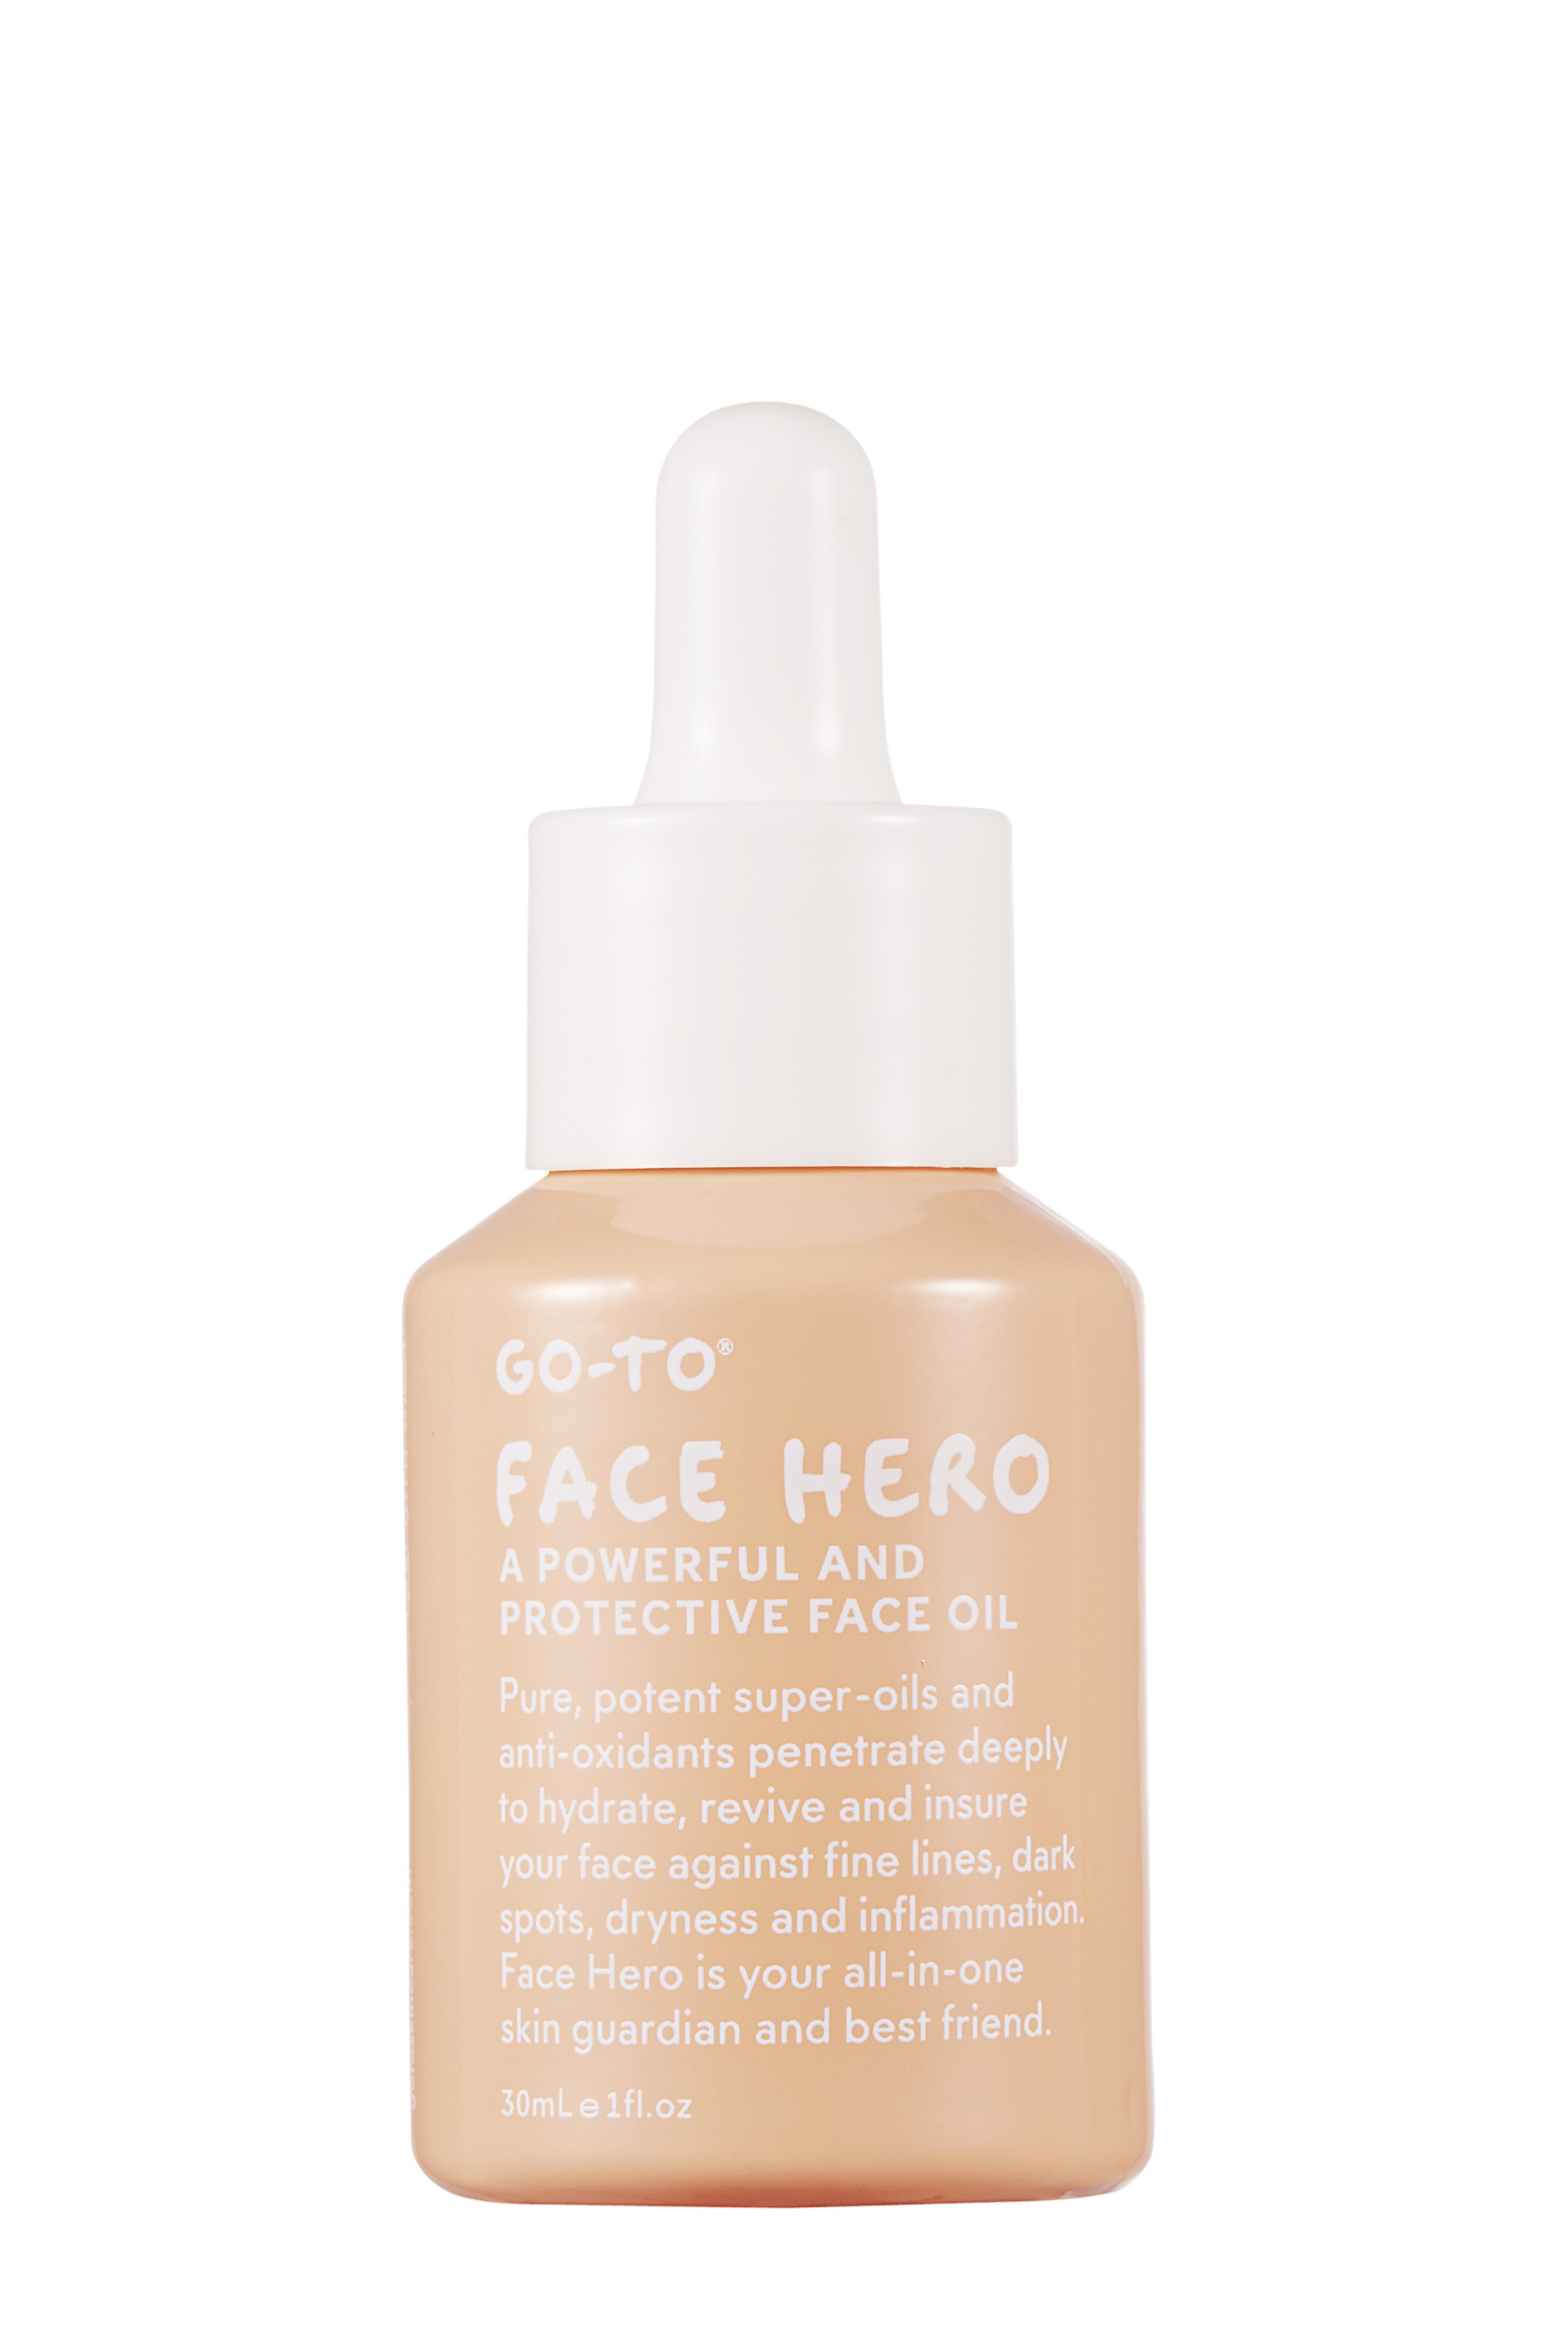 Go-To Face Hero, 30 ml $49